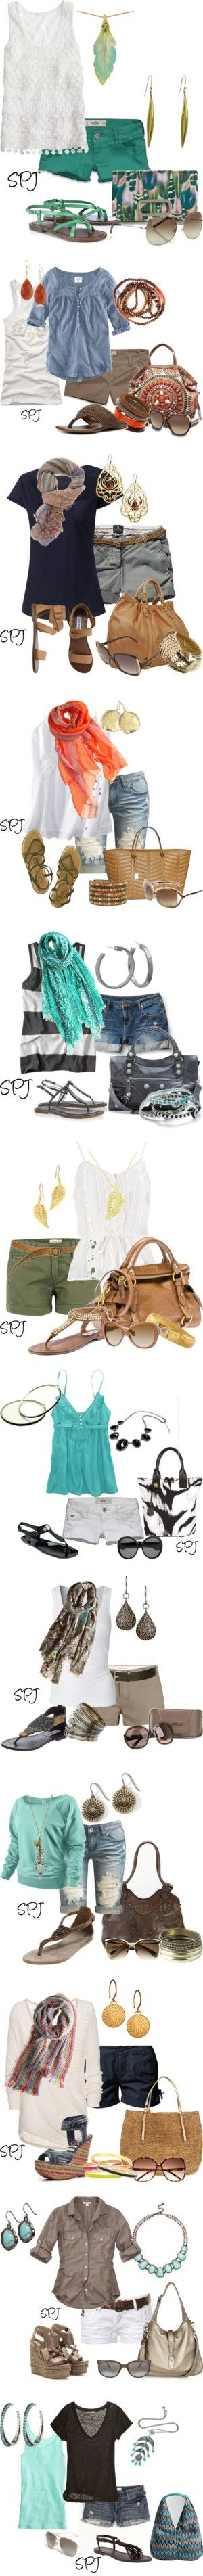 """Grab Your Sunglasses"" by s-p-j ❤ liked on Polyvore"